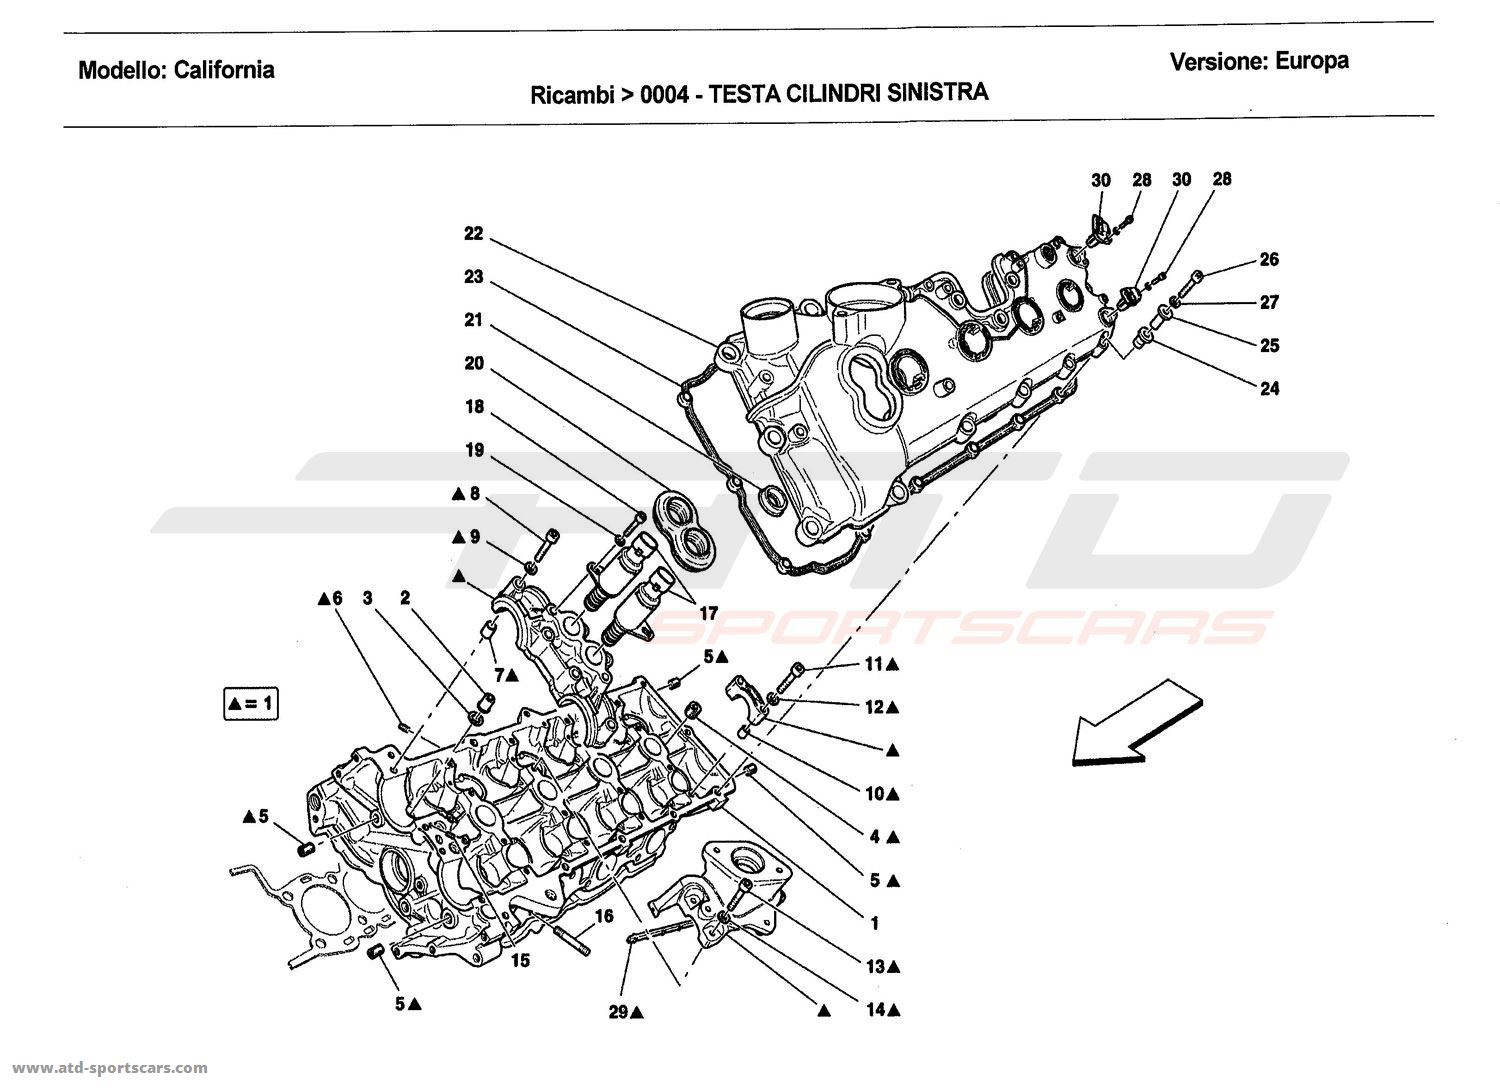 Ferrari California Engine Parts At Atd Sportscars